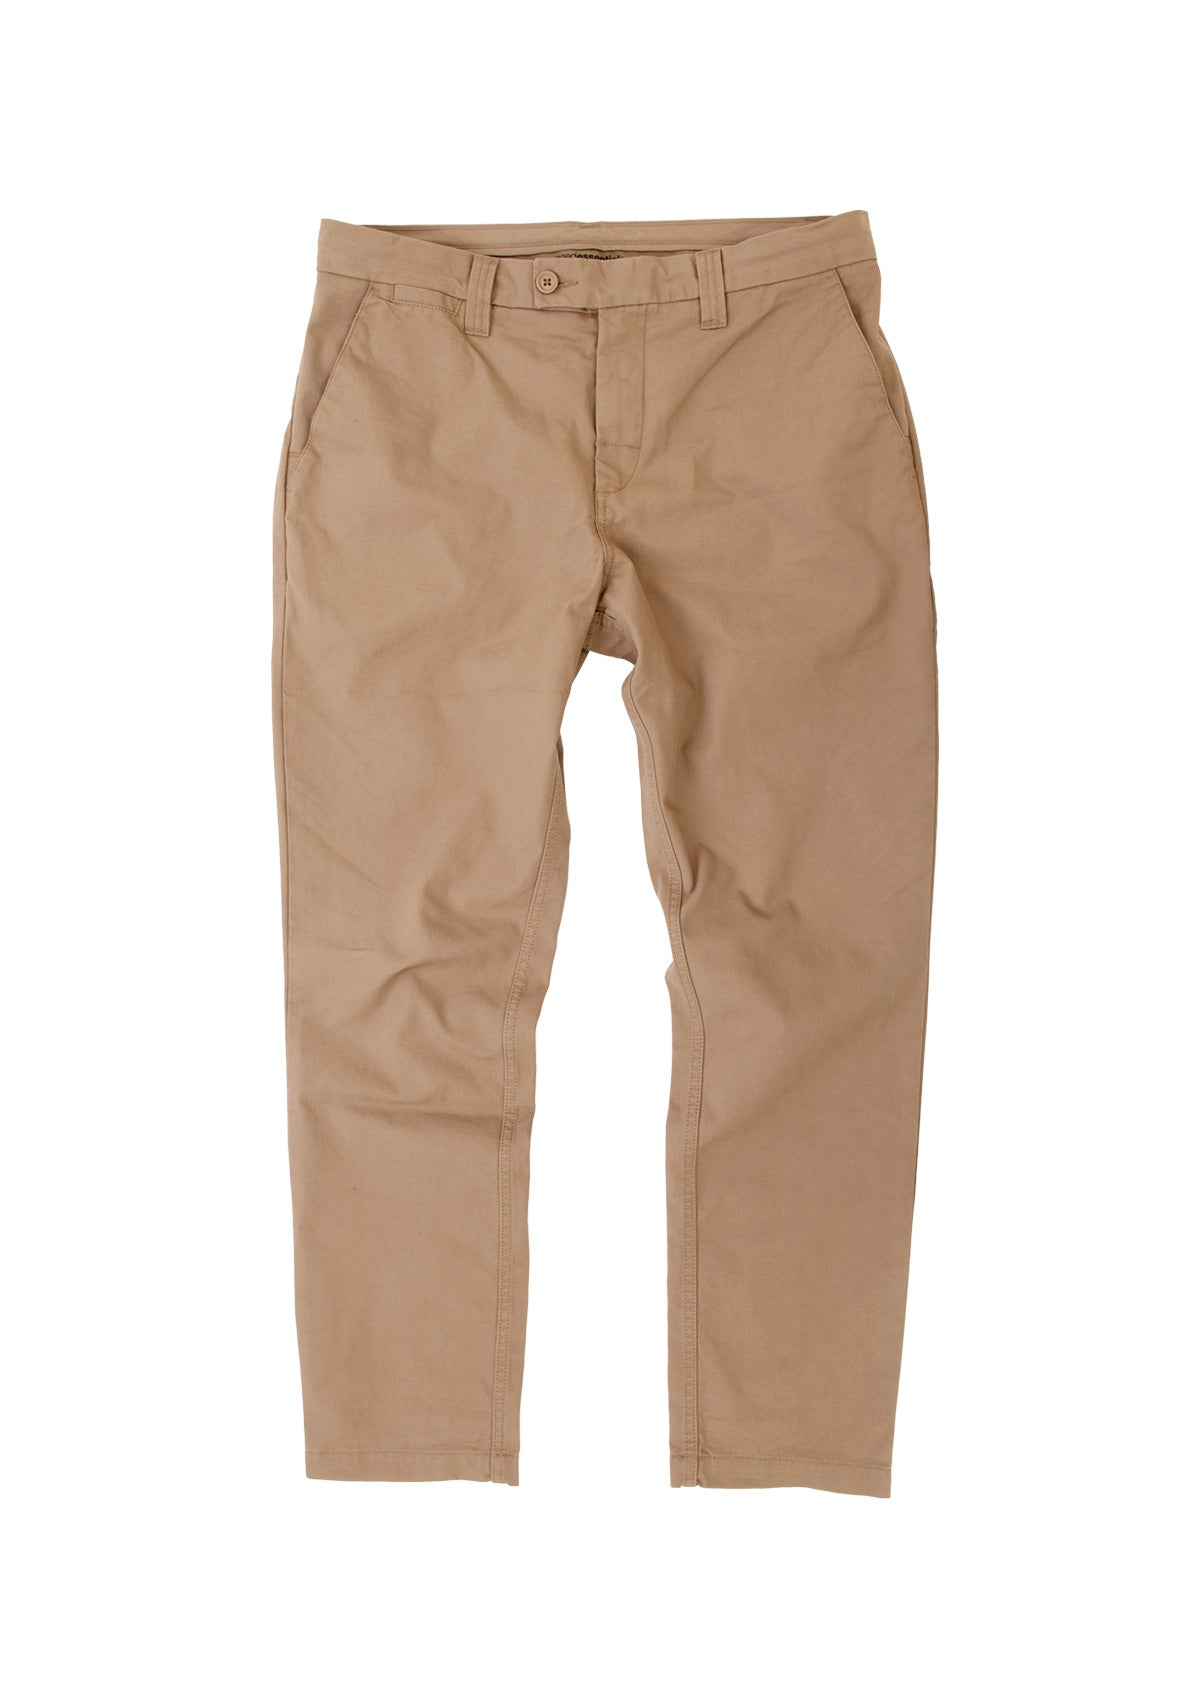 needessentials organic cotton pant tan chino